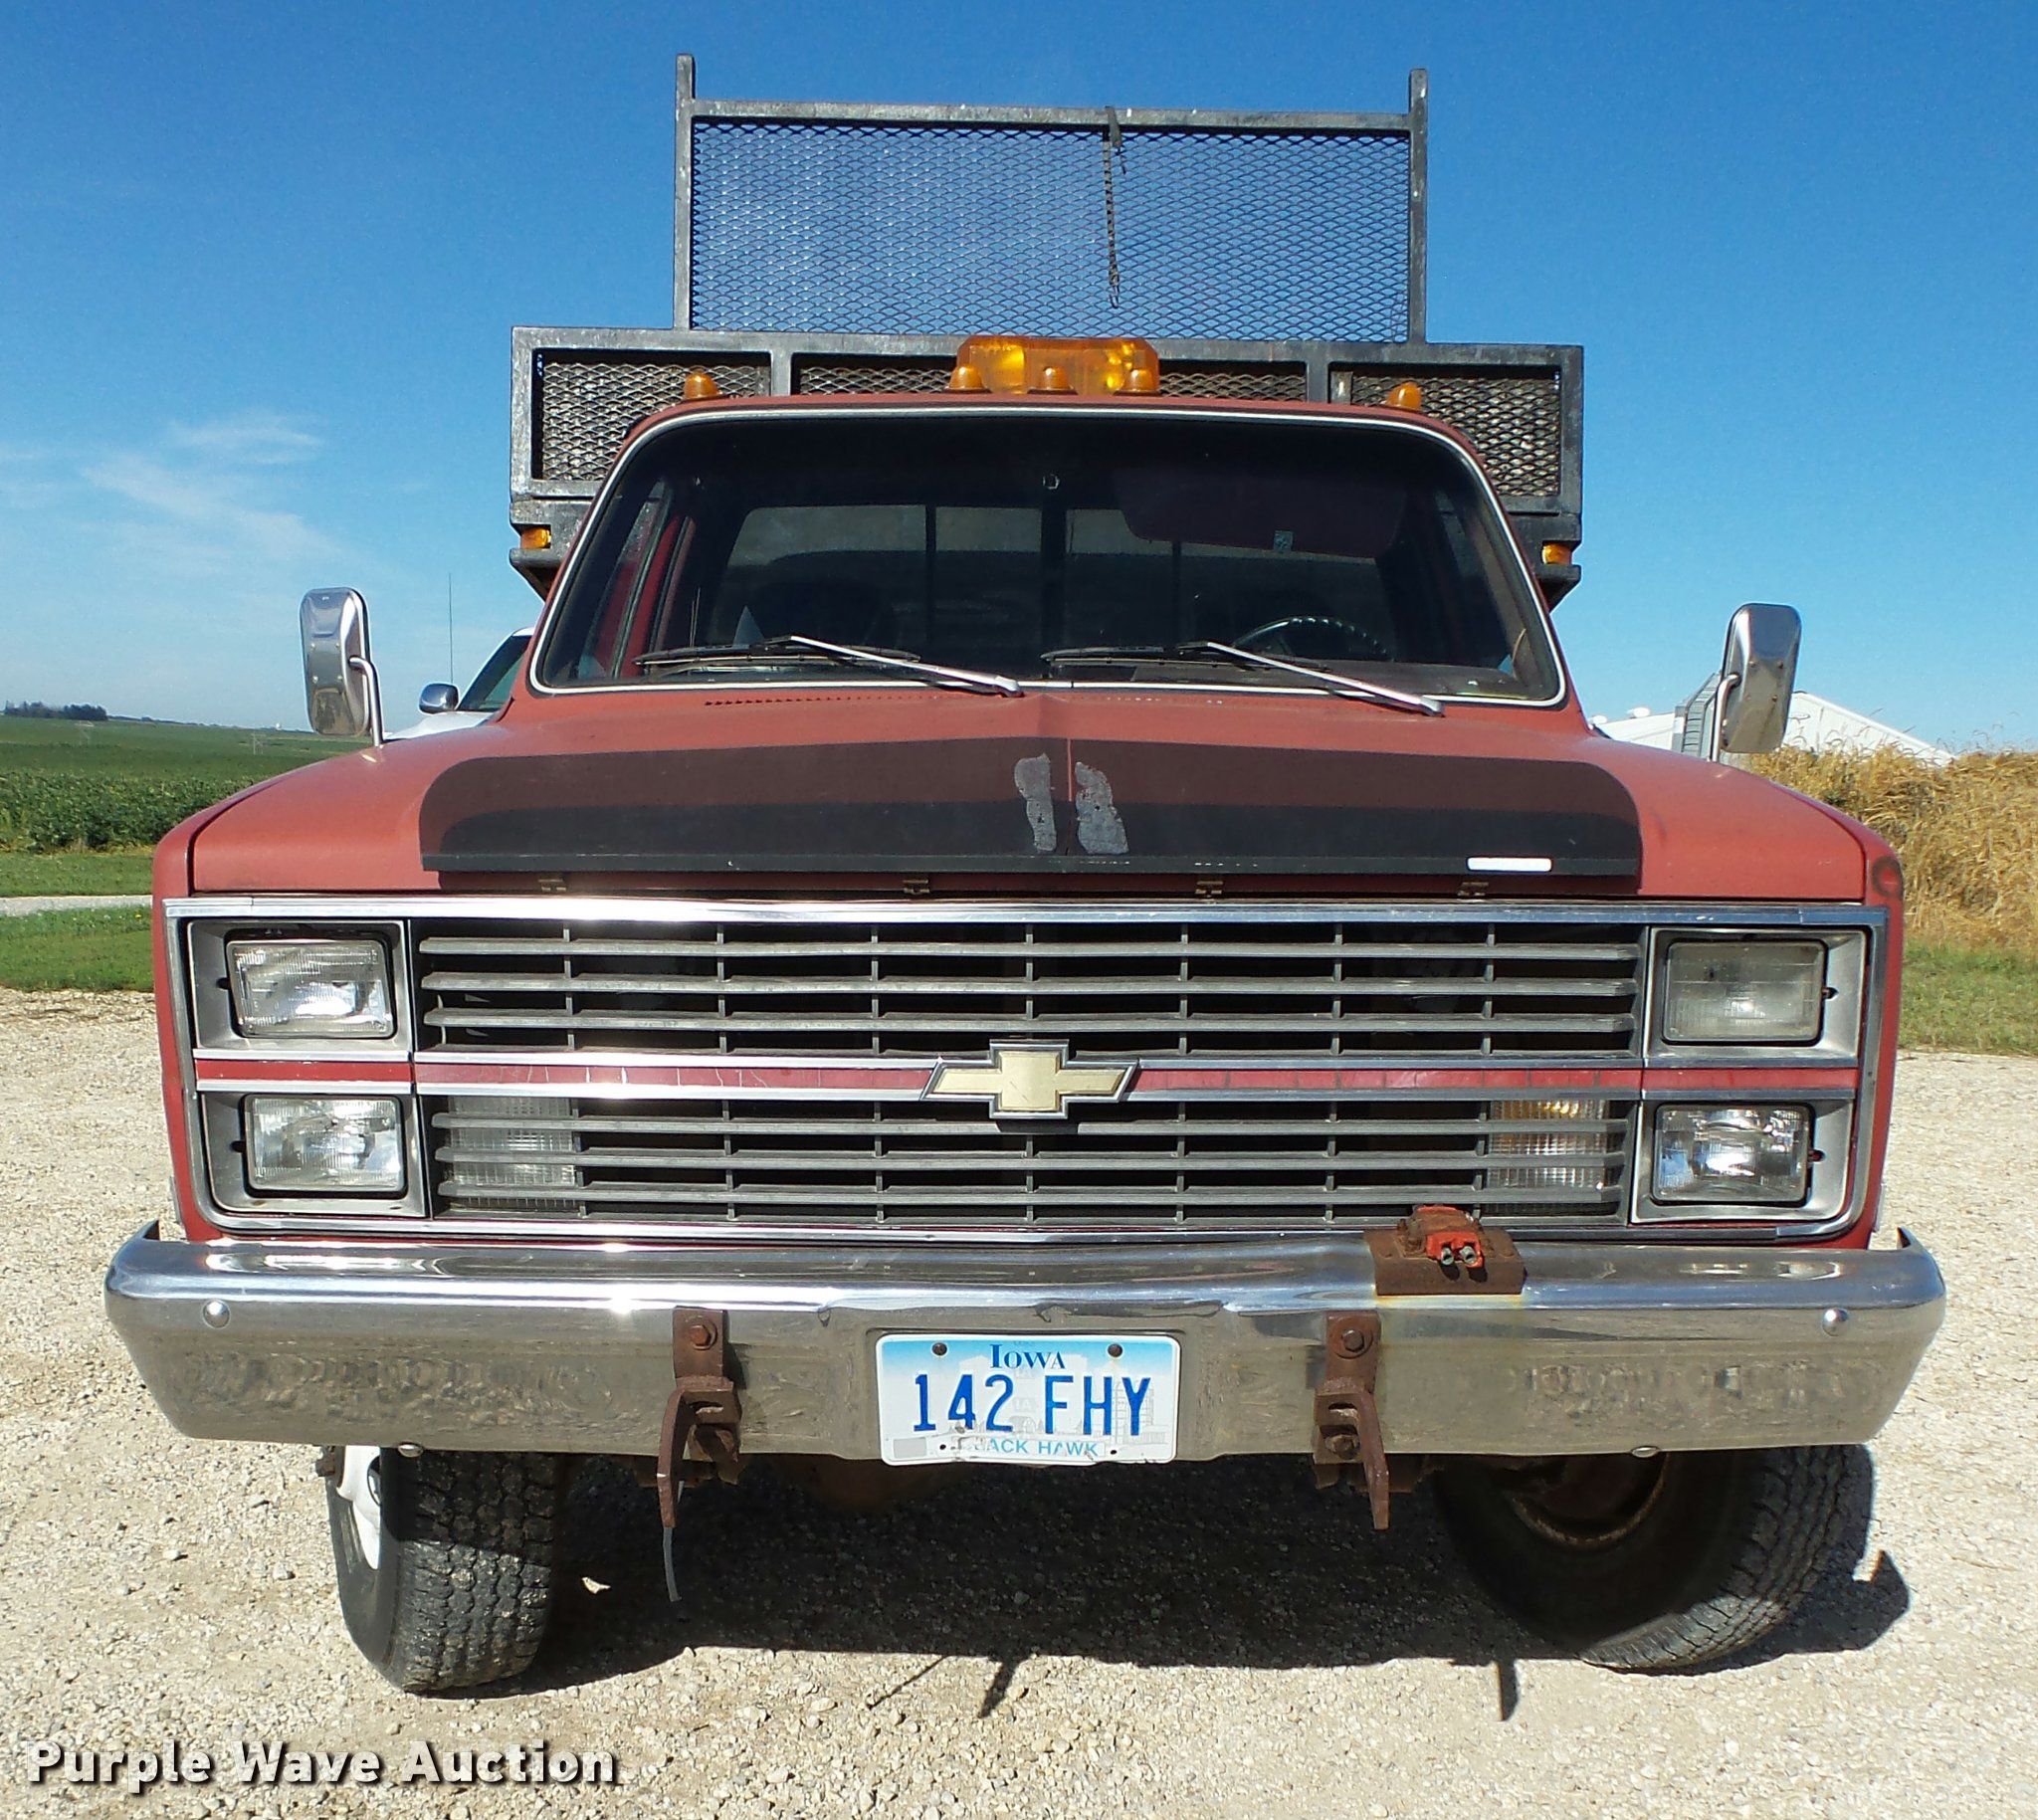 1983 chevrolet k30 flatbed pickup truck full size in new window